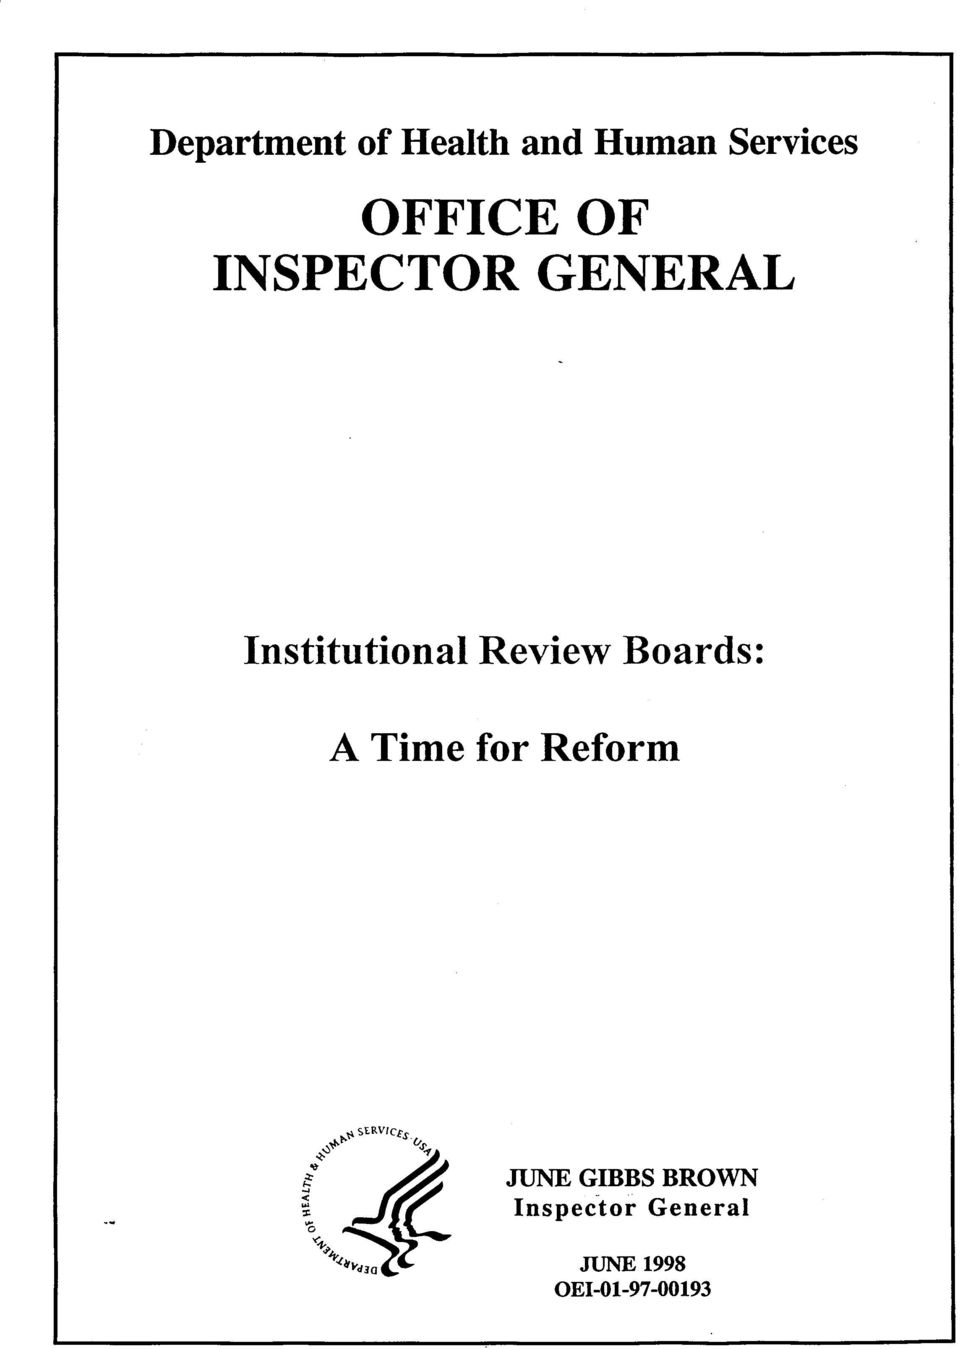 Review Boards: A Time for Reform JUNE GIBBS